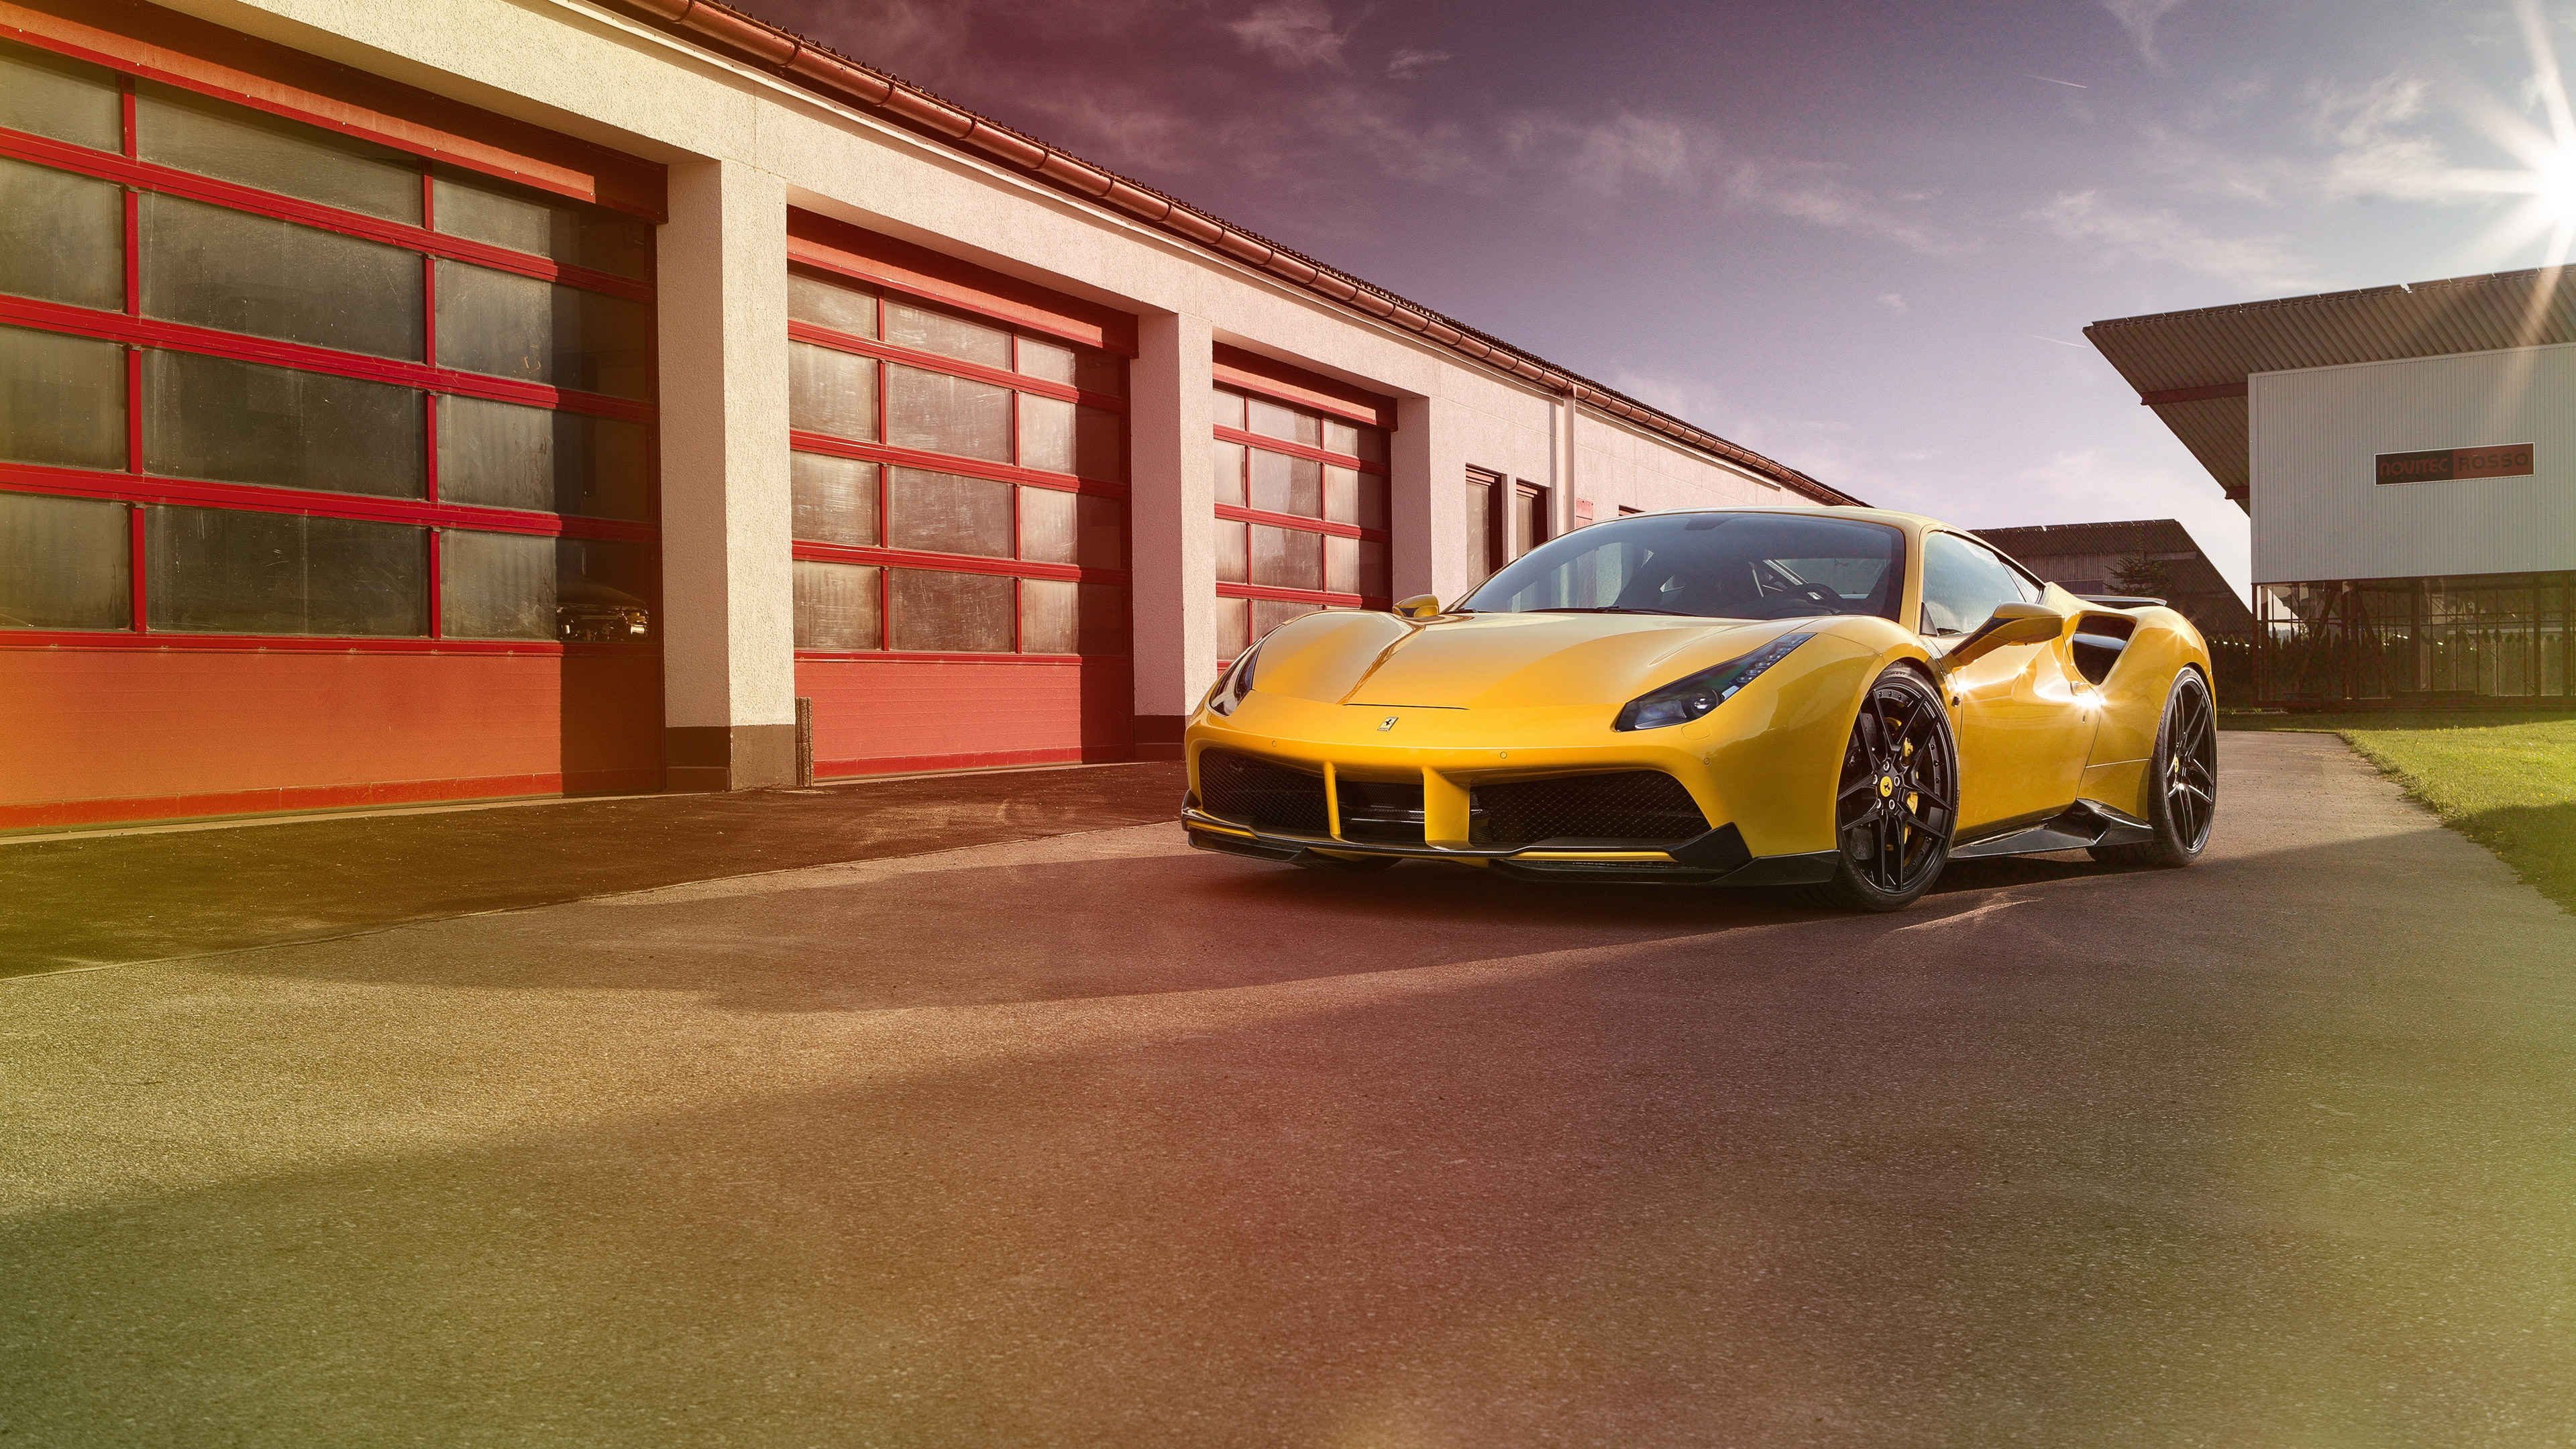 2016 ferrari 488 gtb 1539104616 - 2016 Ferrari 488 GTB - ferrari wallpapers, ferrari 488 wallpapers, cars wallpapers